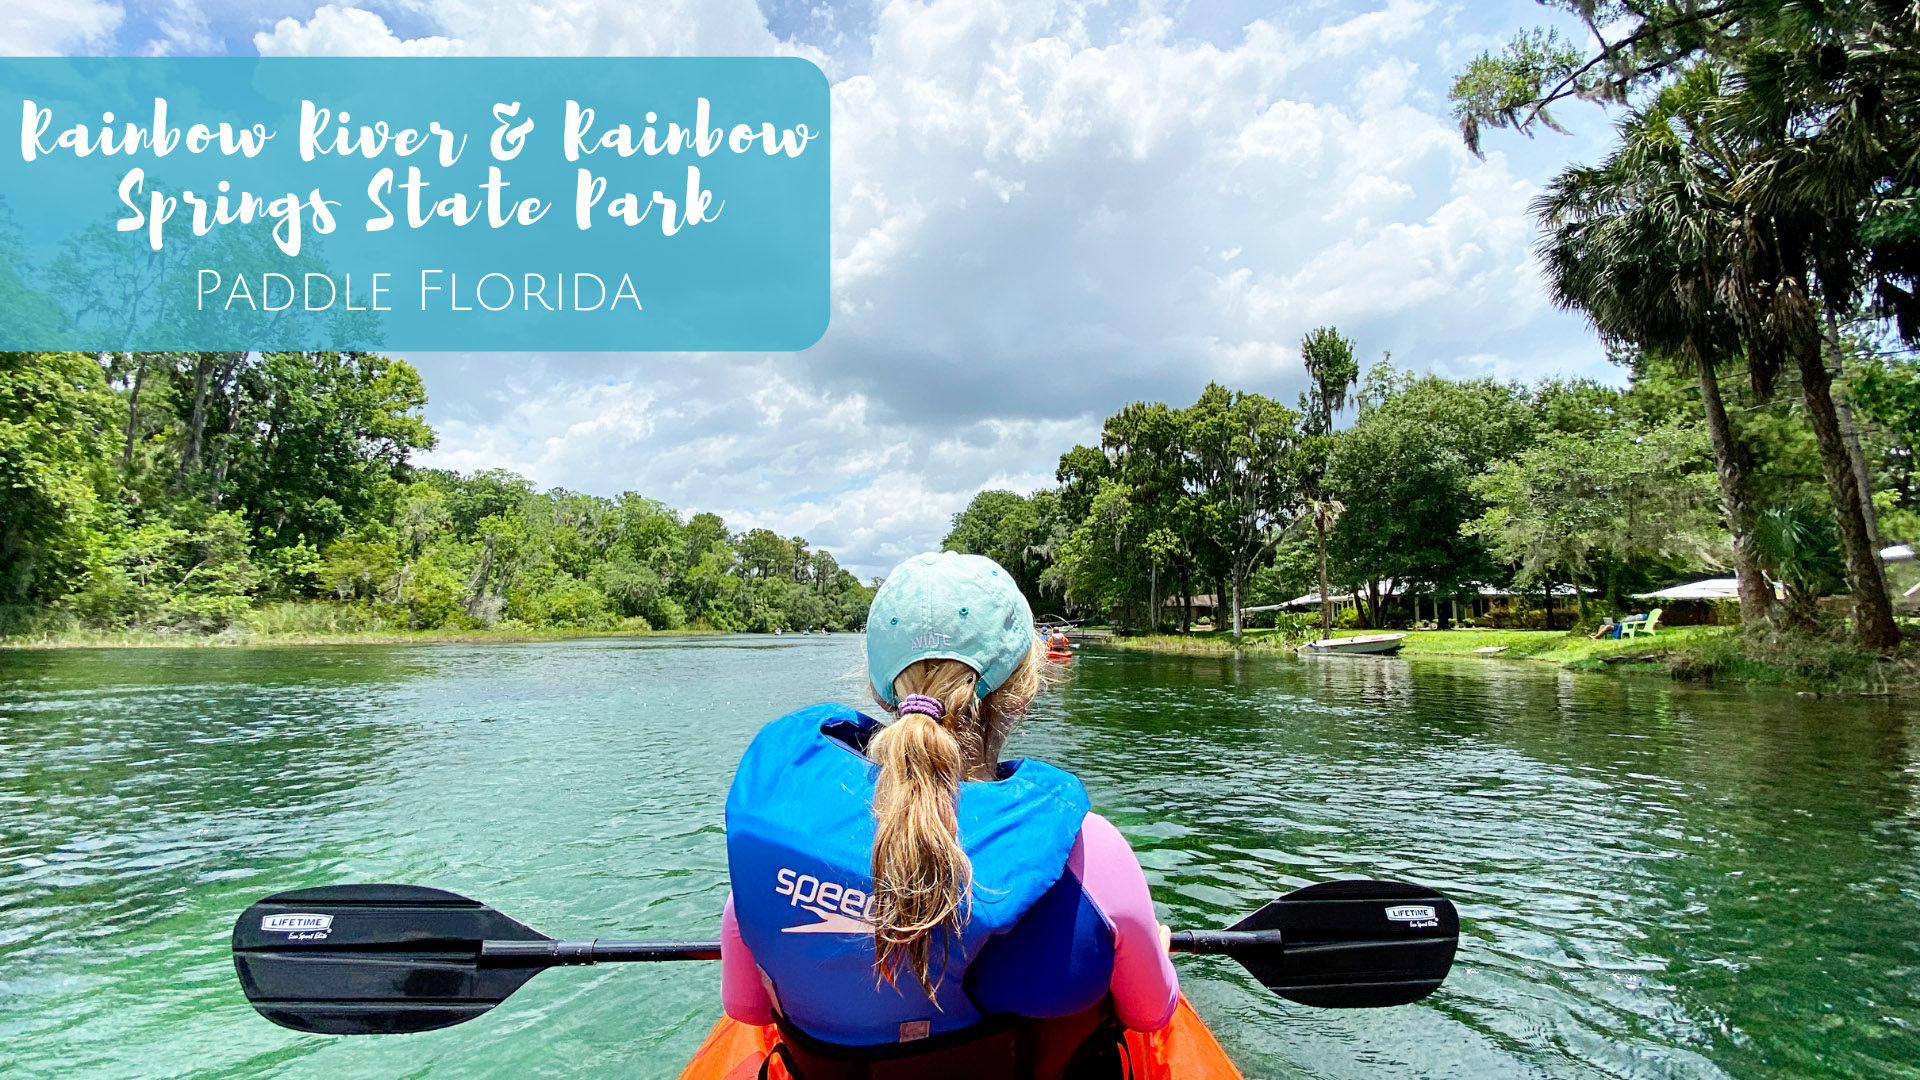 Kayaking Rainbow River in Dunnellon, Florida